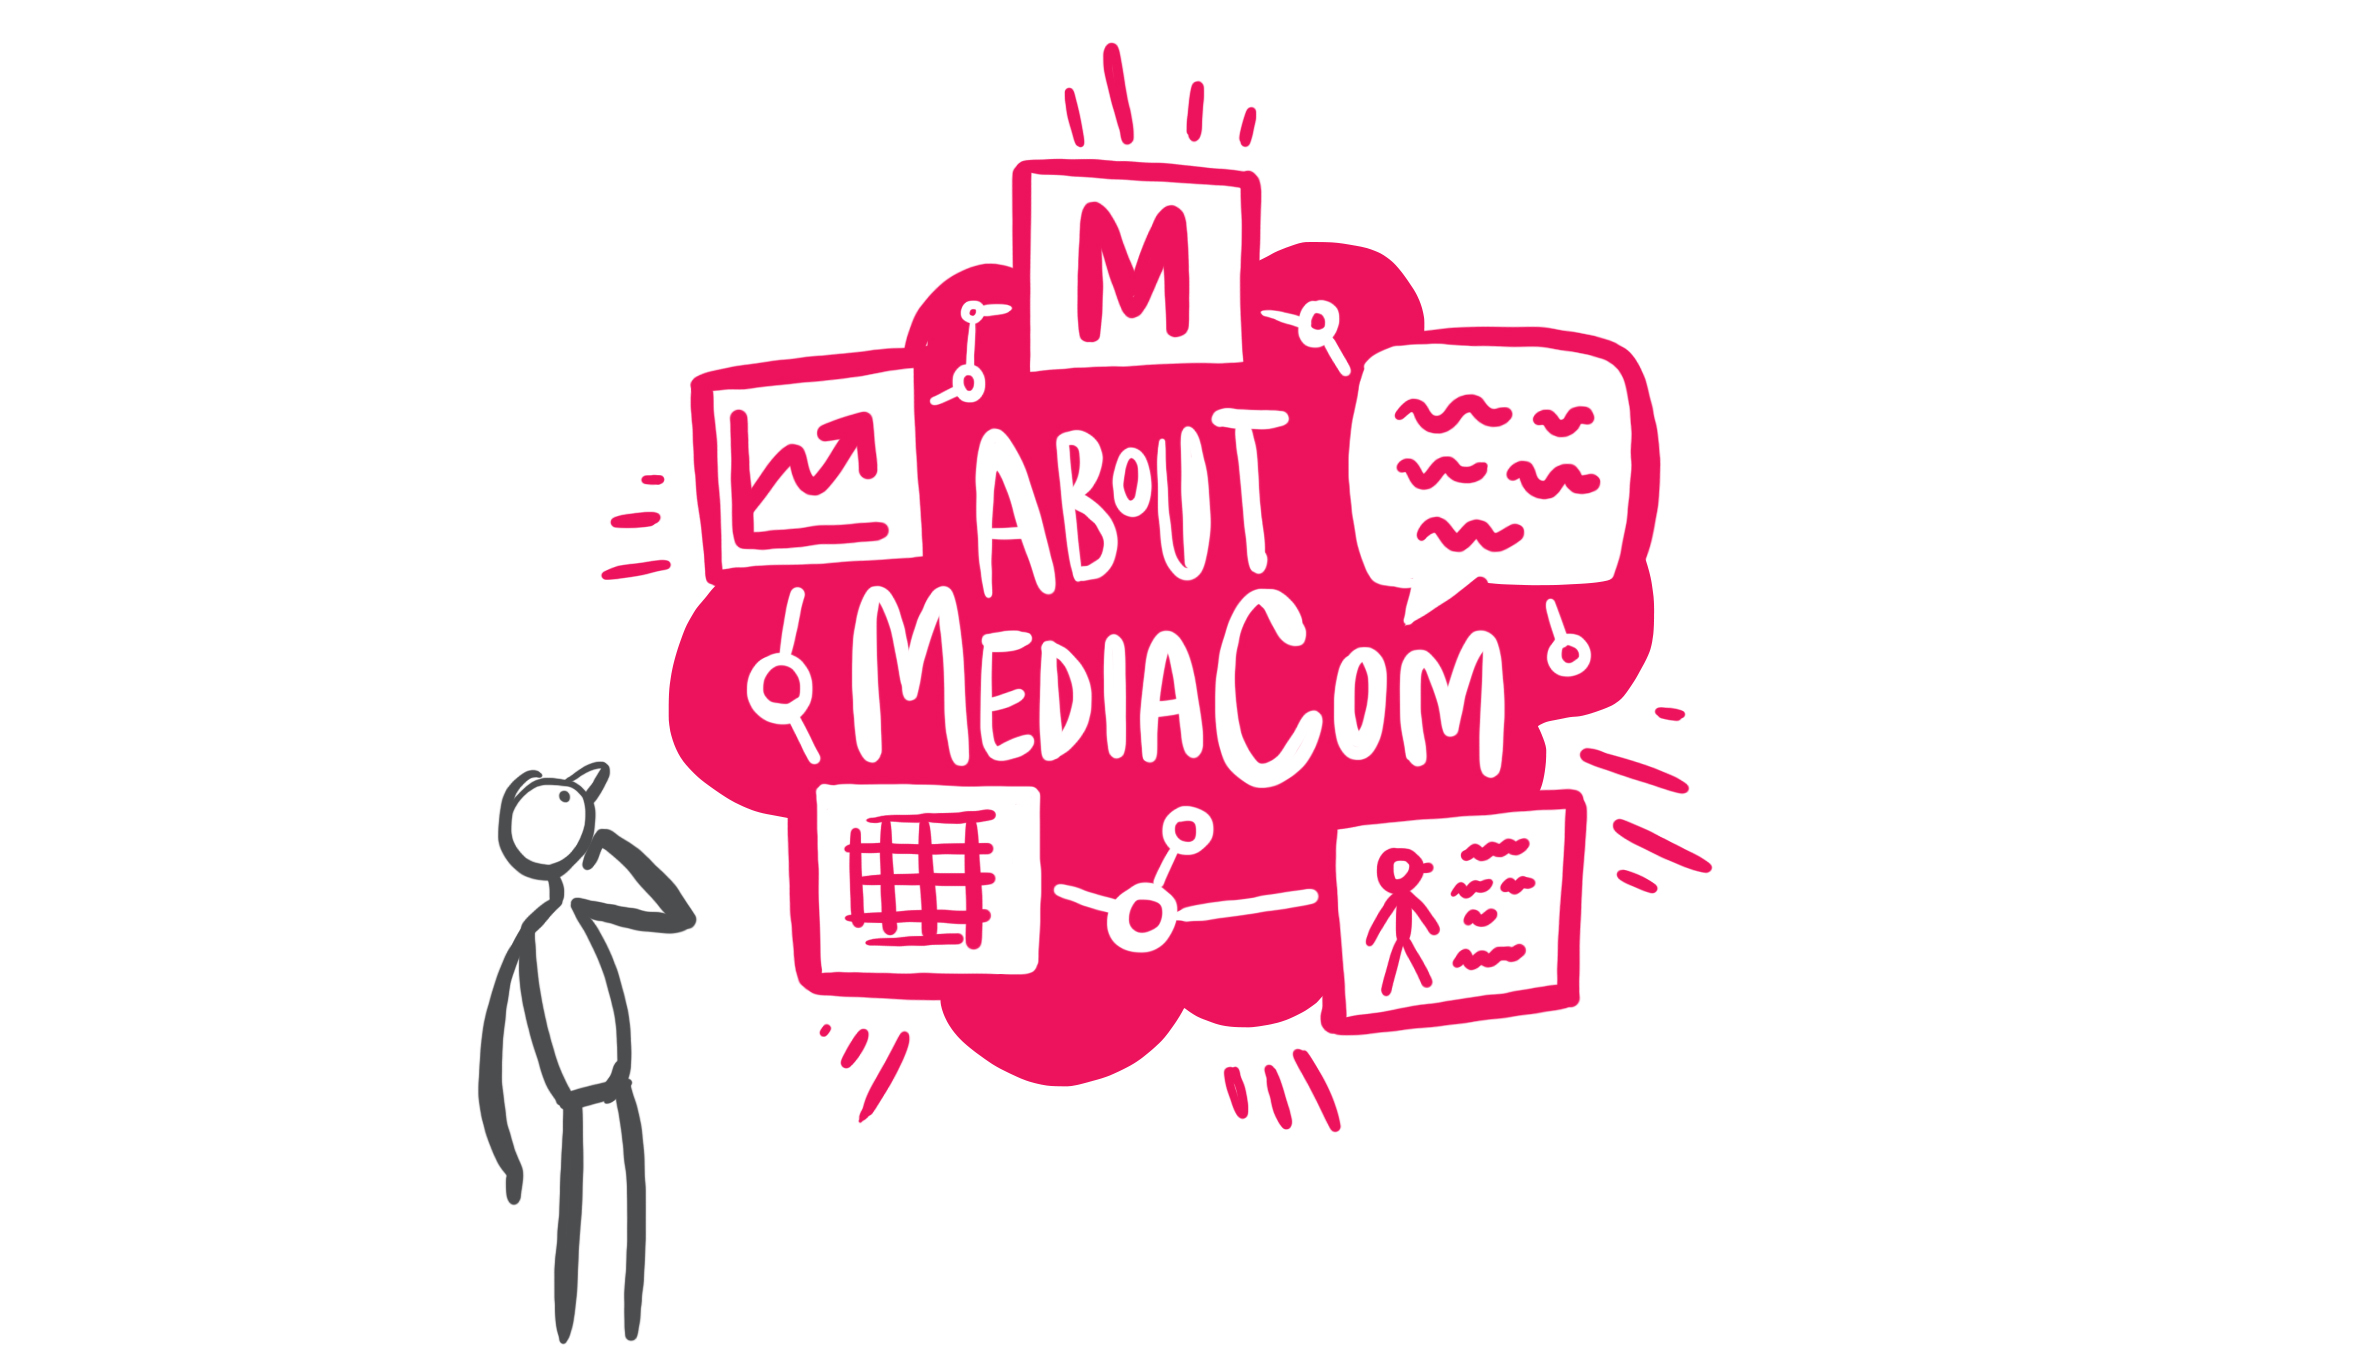 About Mediacom